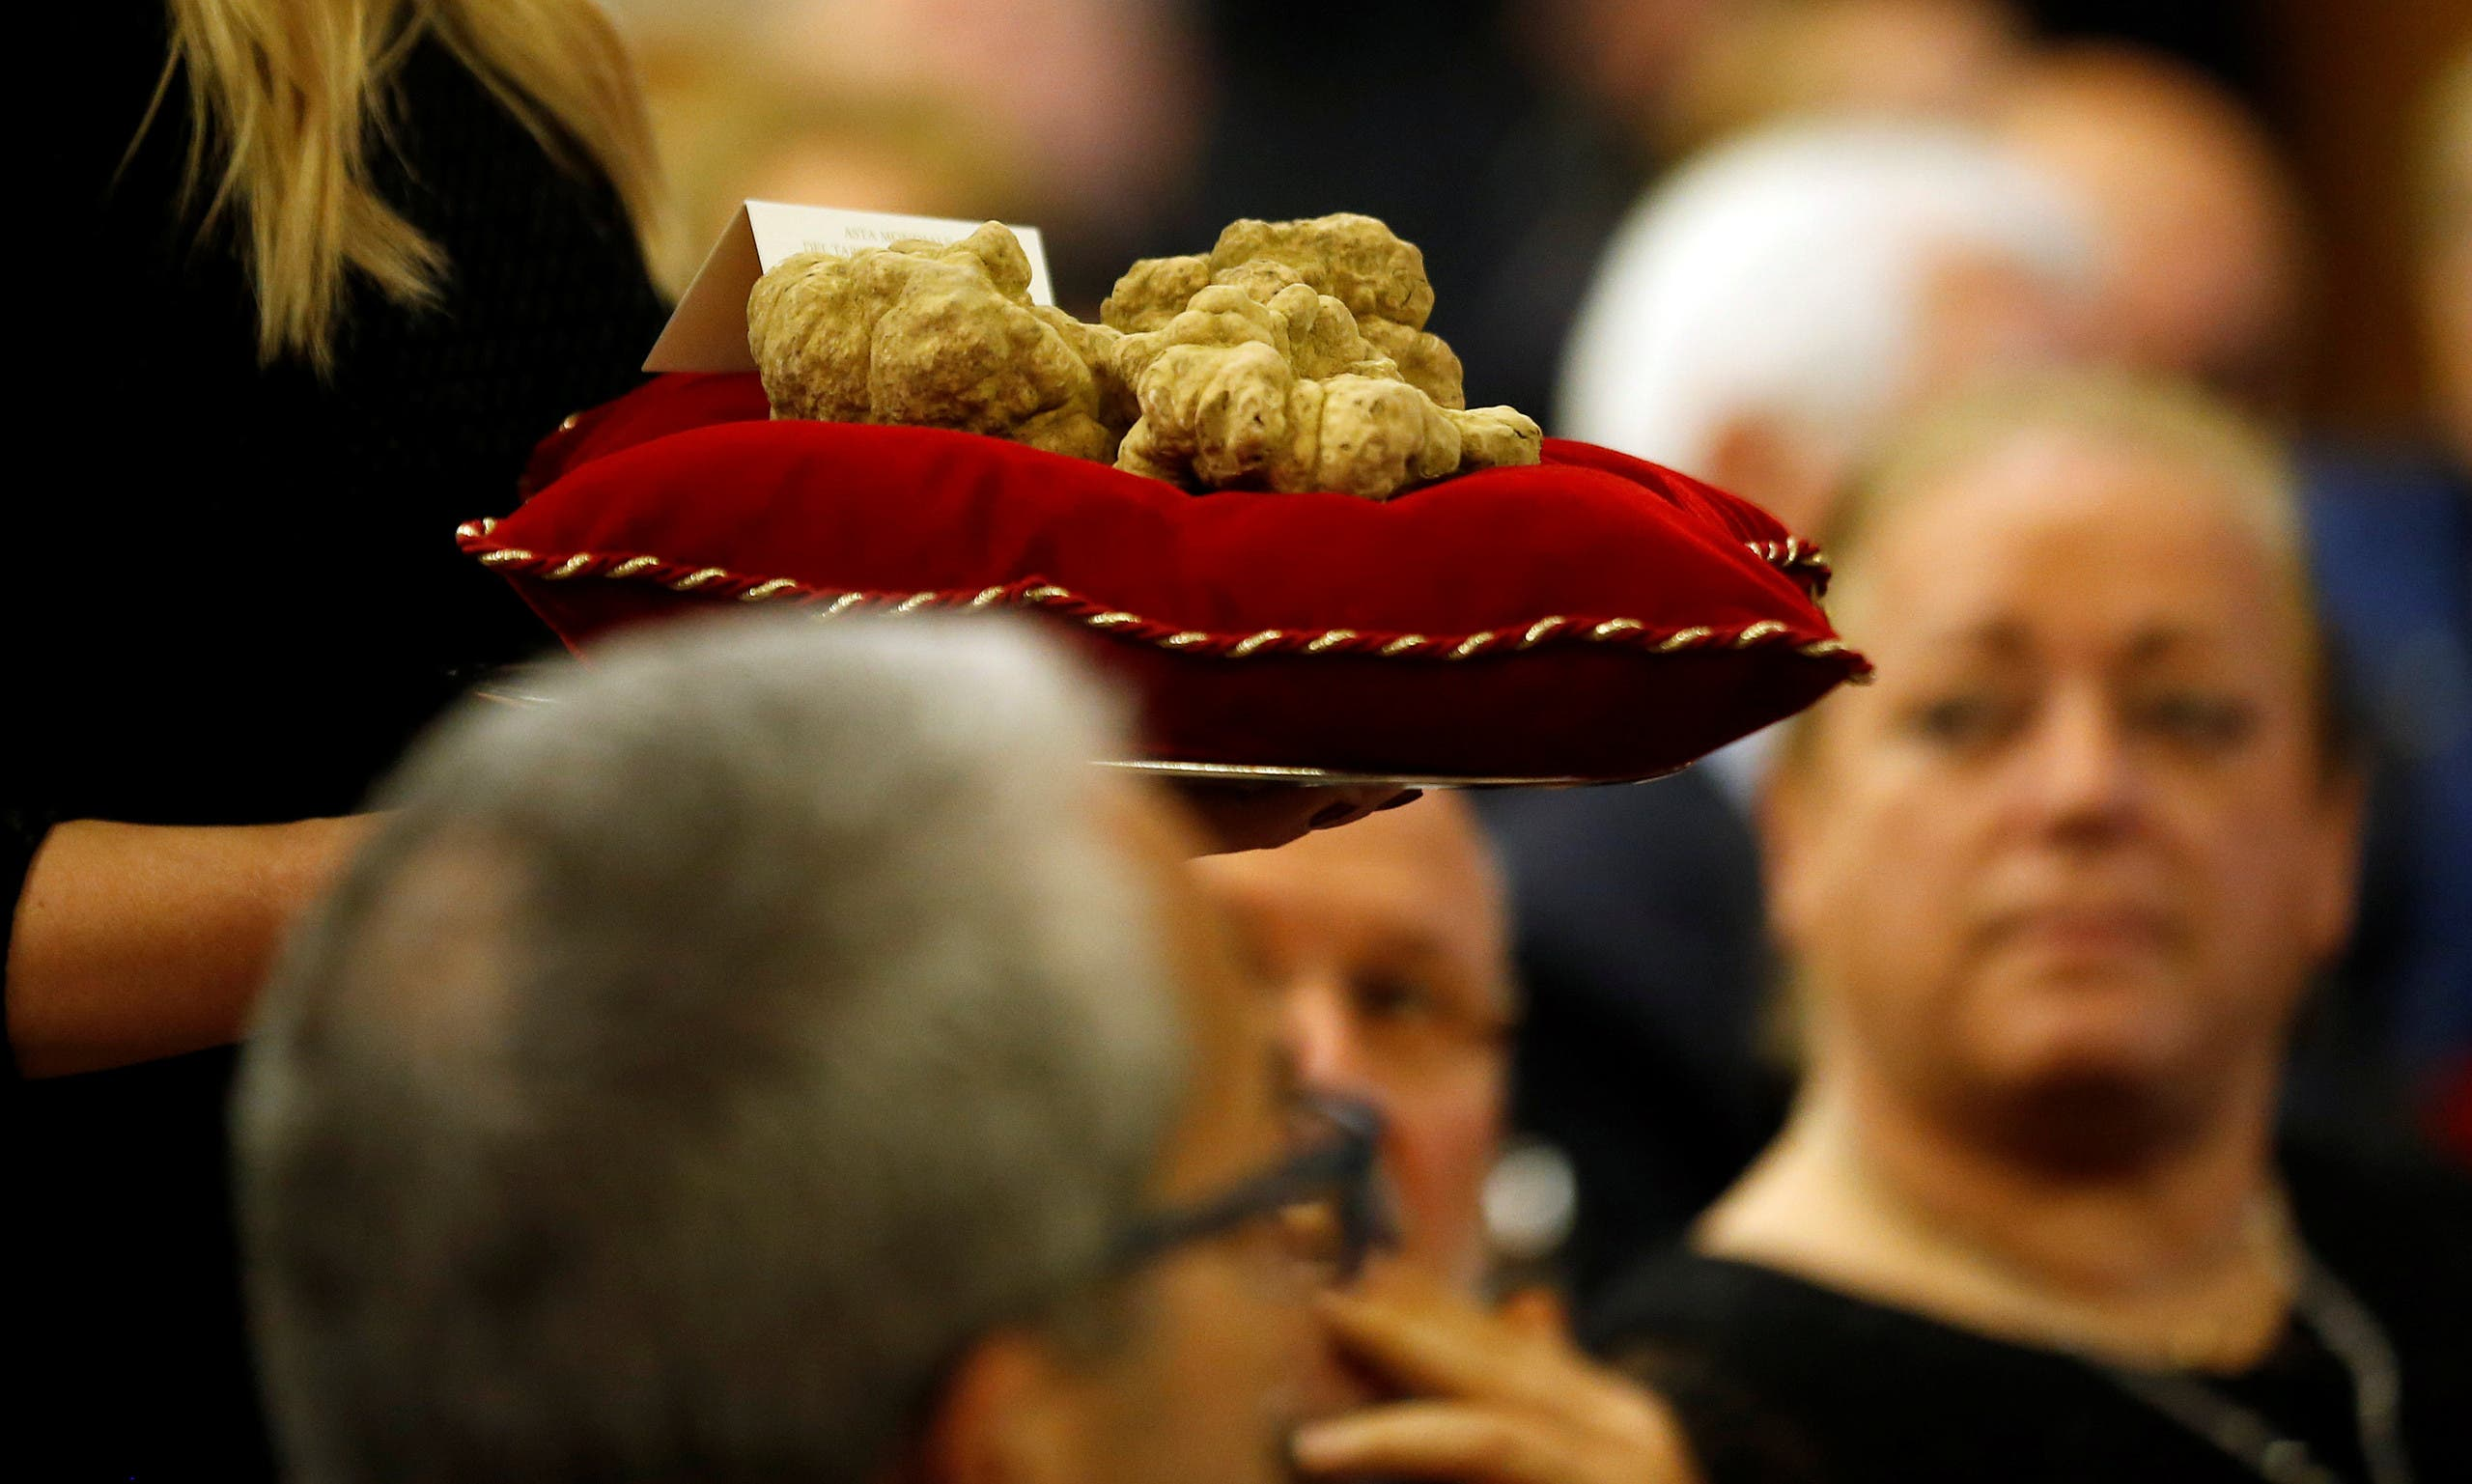 Hostess carries a set of truffles weighing 850 grams during the international auction for truffles at the Grinzane Castle in Grinzane Cavour near Alba, Italy, November 12, 2017. reuters